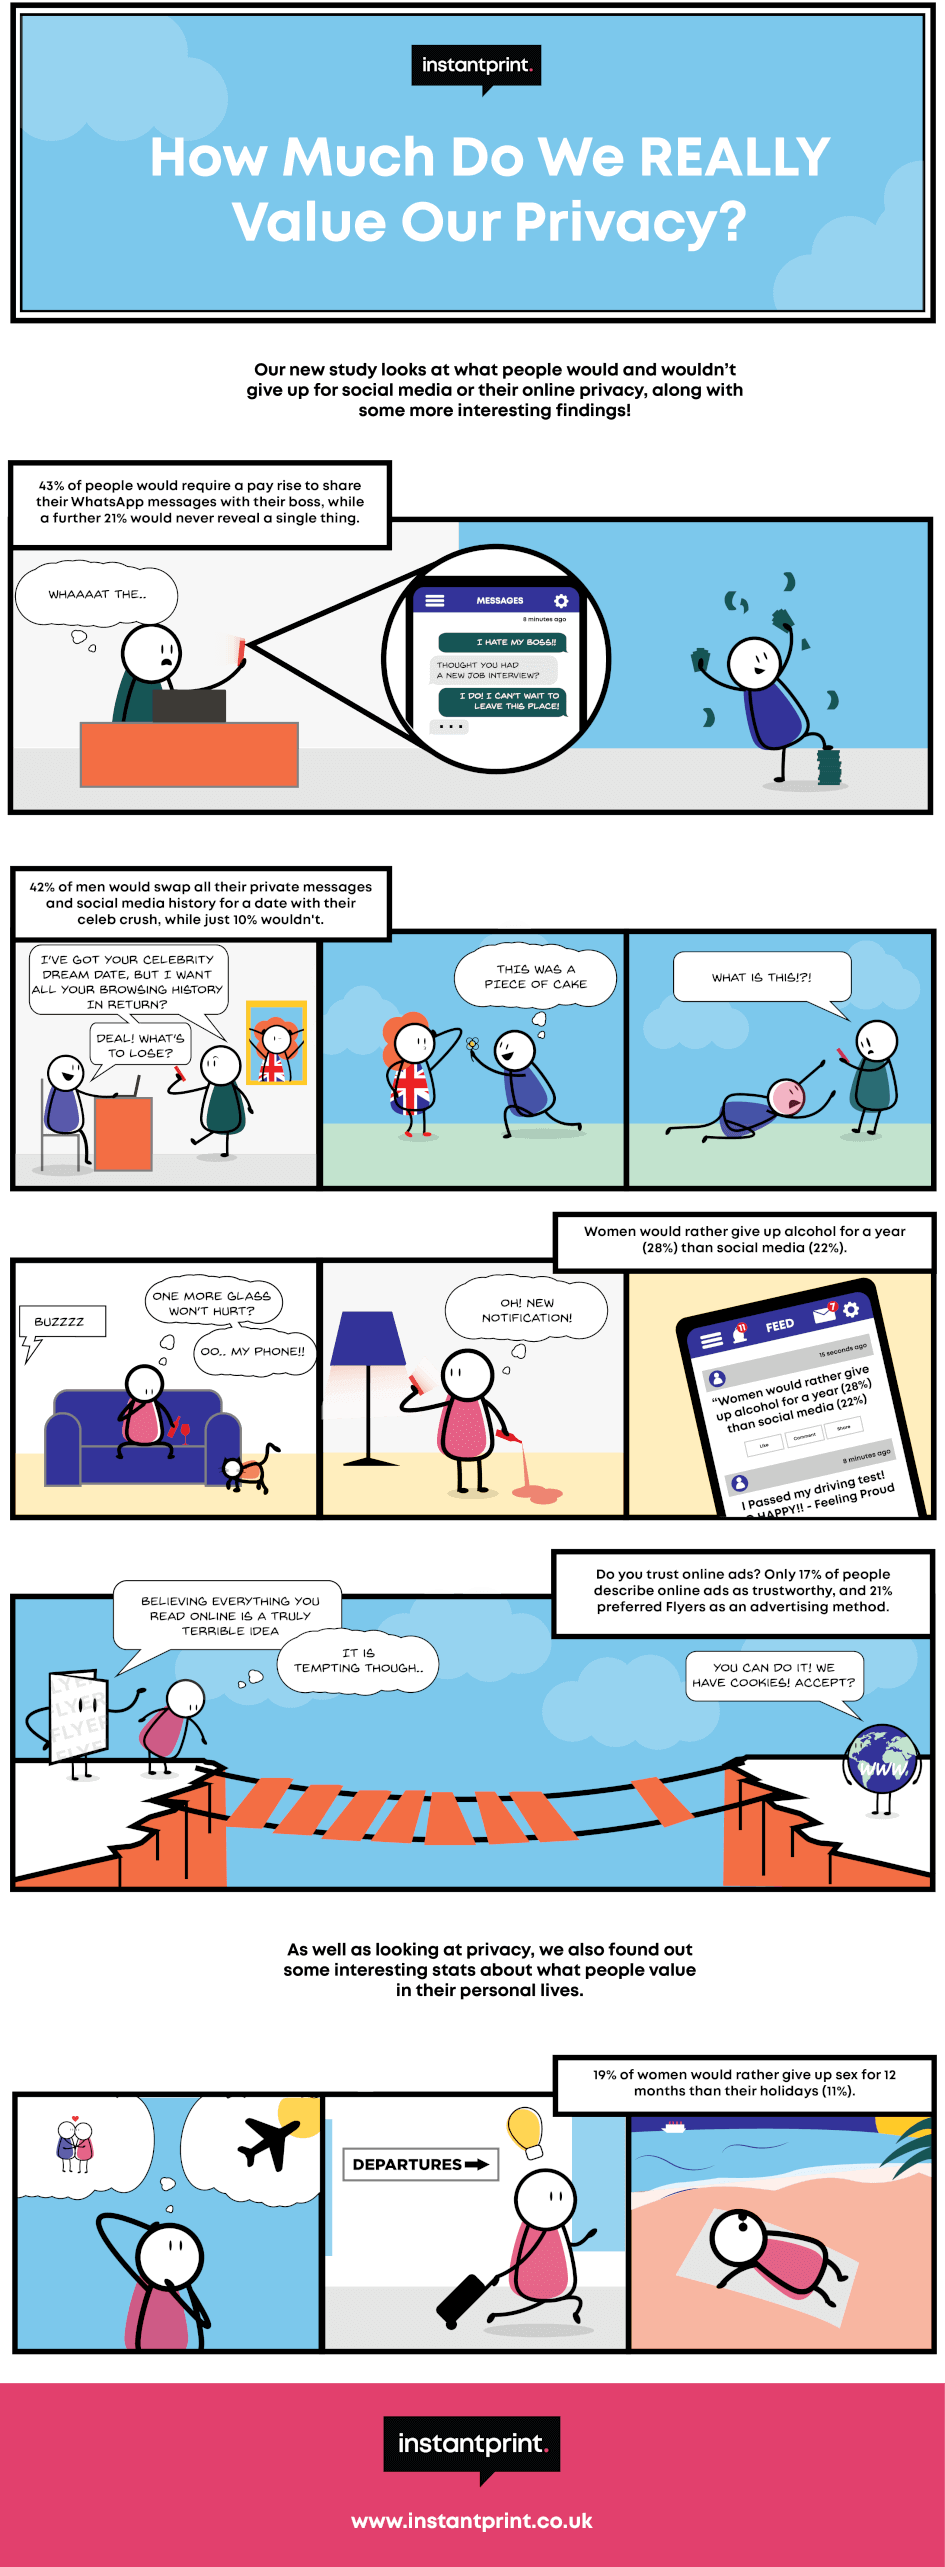 comic strip depicting the UK's attitudes to privacy online.